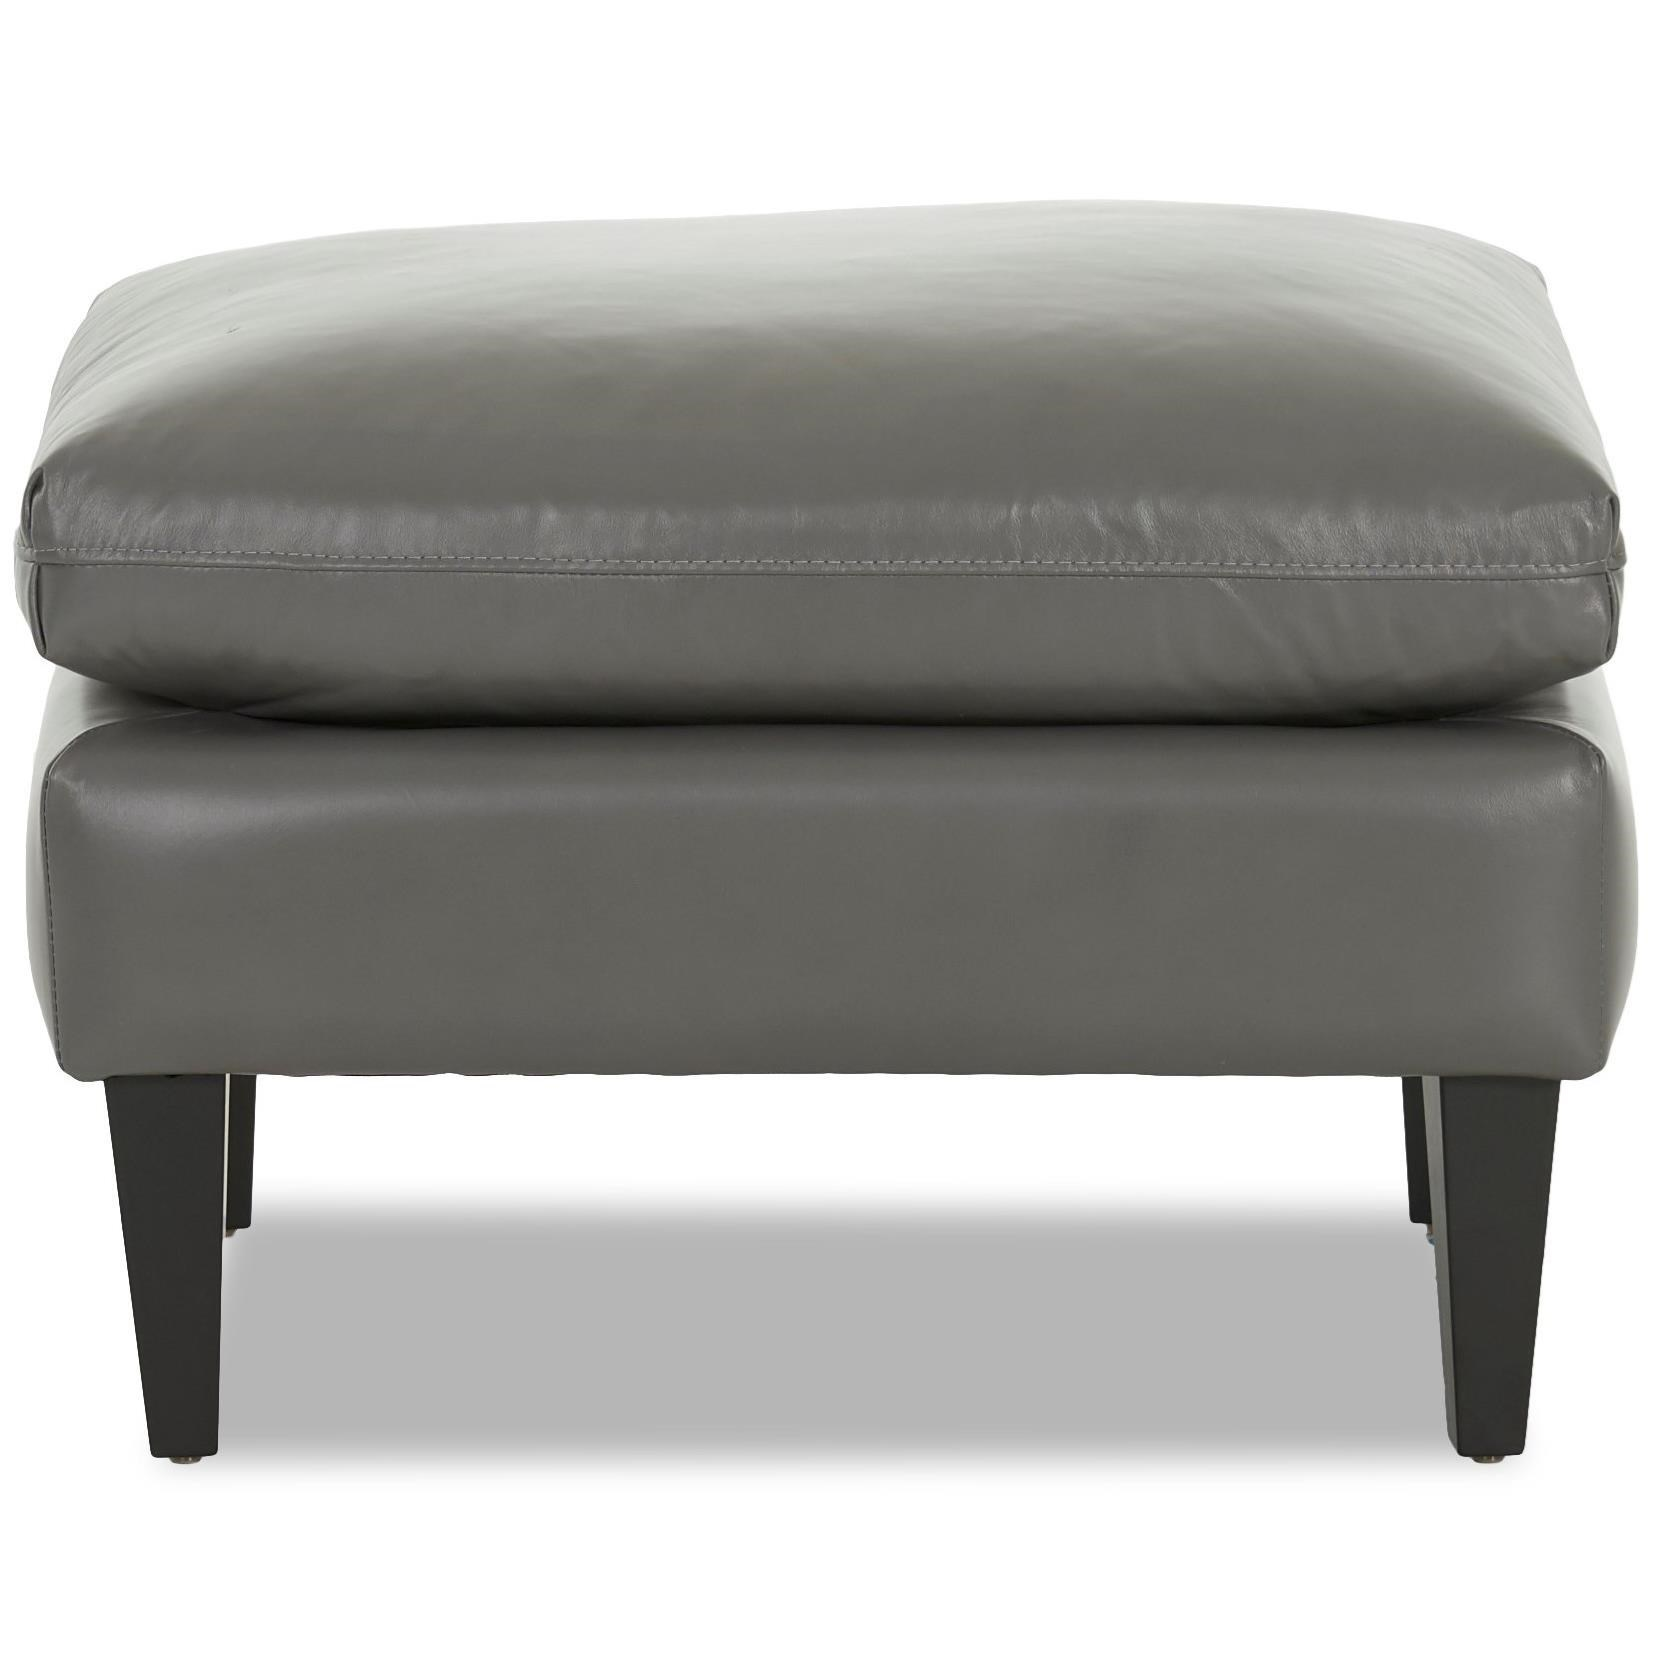 Charmant Florence Mid Century Modern Ottoman By Simple Elegance At Rotmans